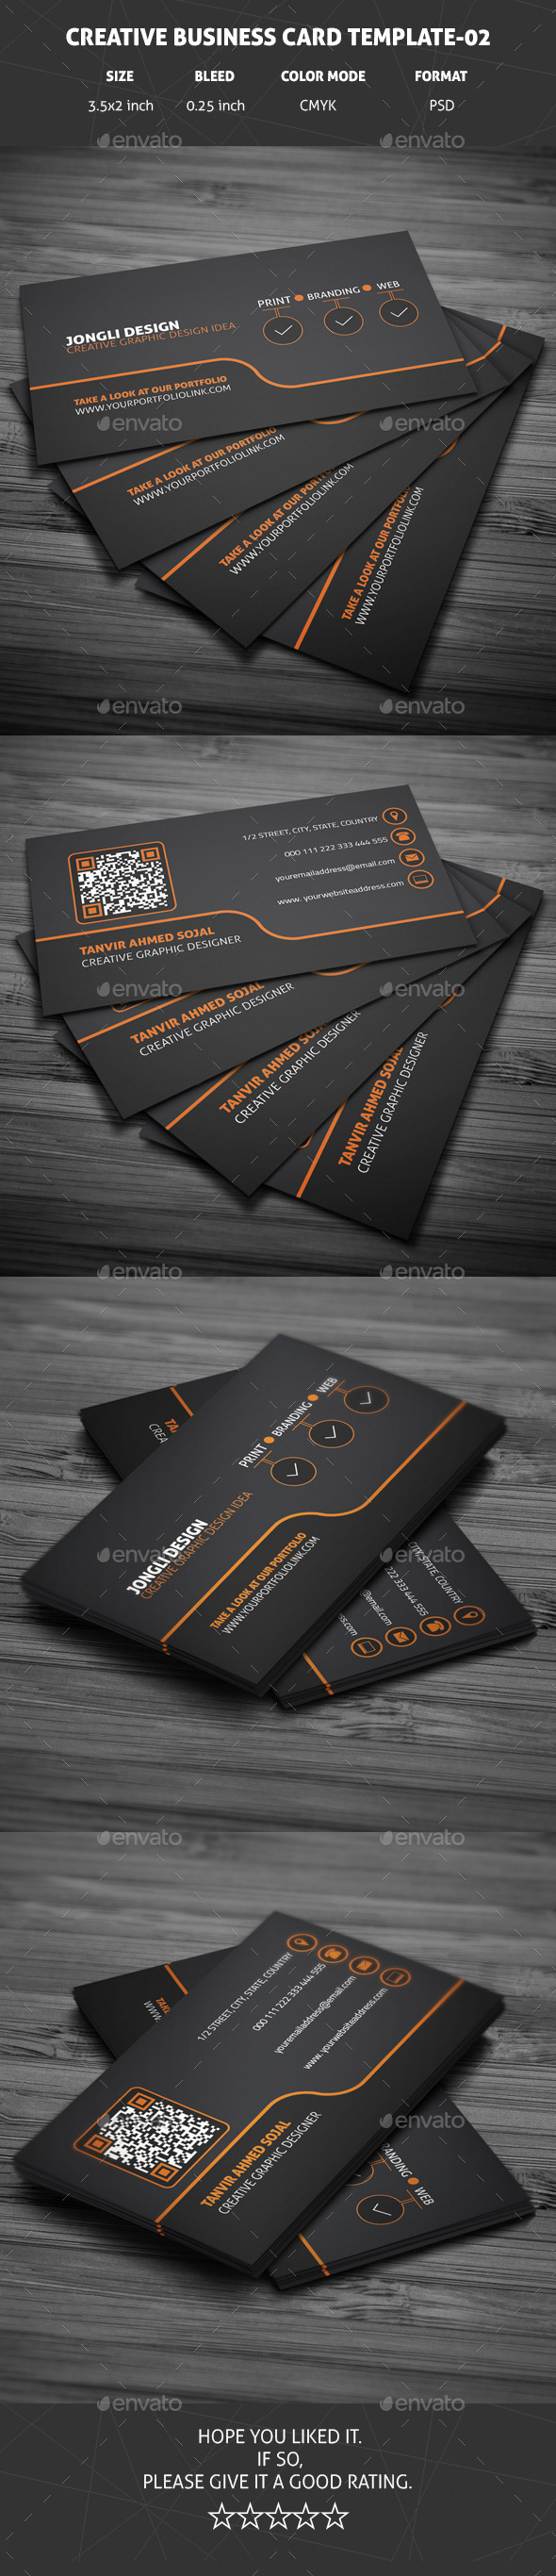 GraphicRiver Creative Business Card Template 02 10684023